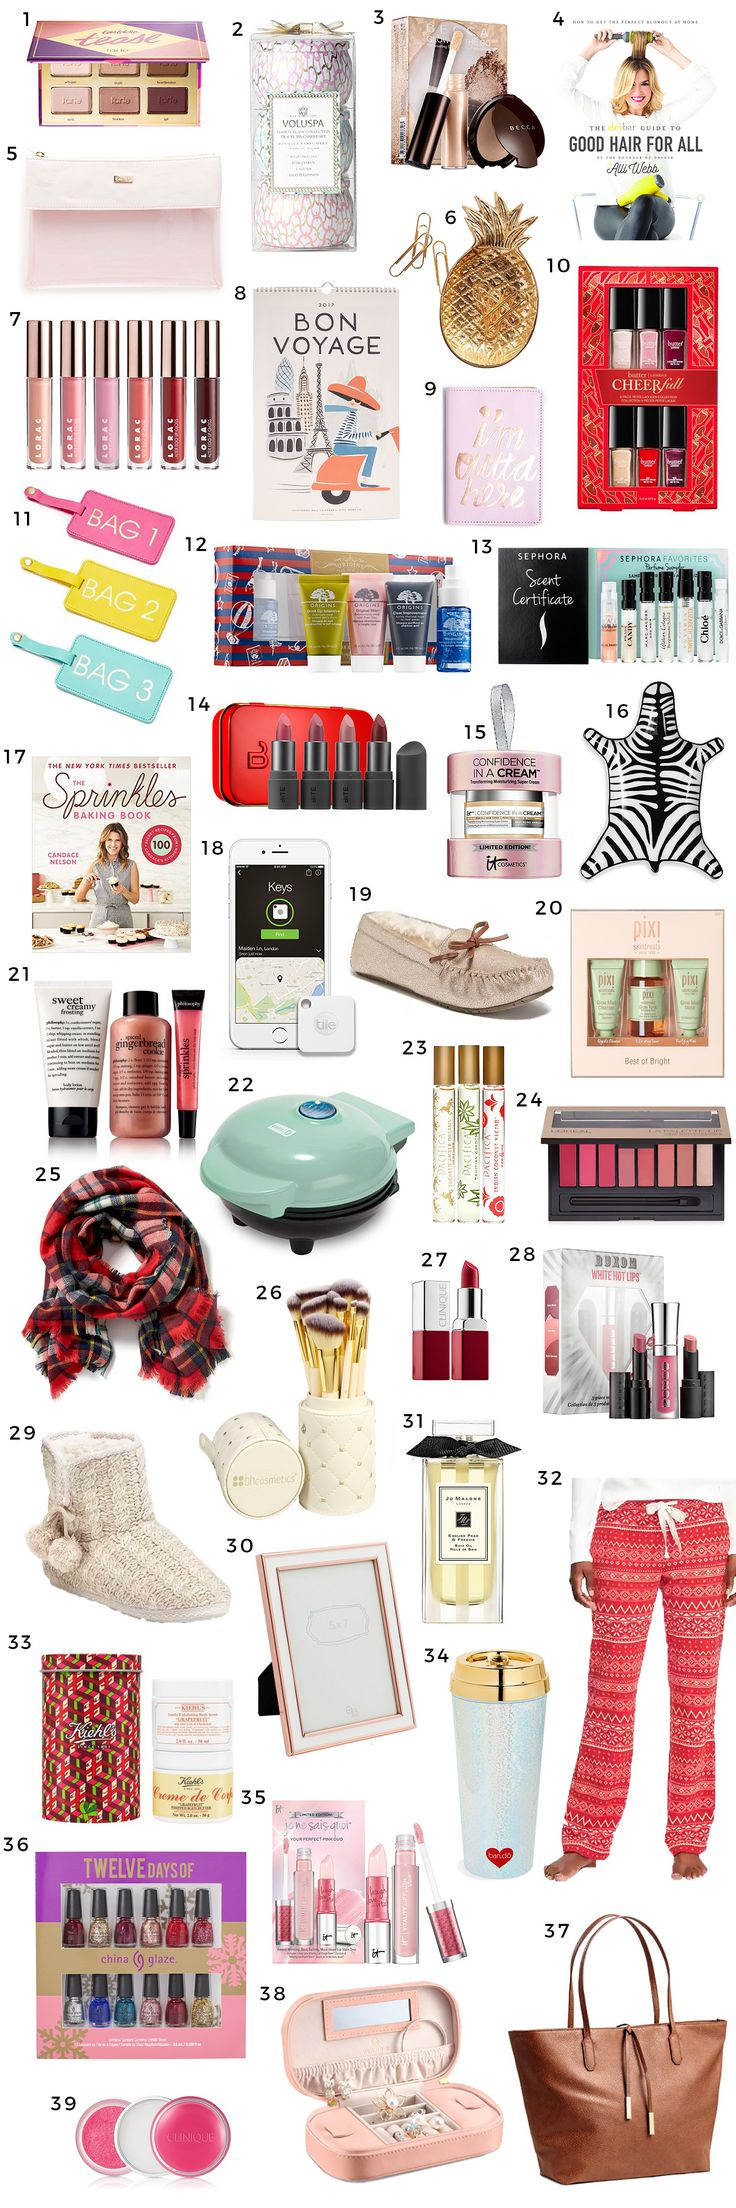 The Best Christmas Gift Ideas For Women Under 25